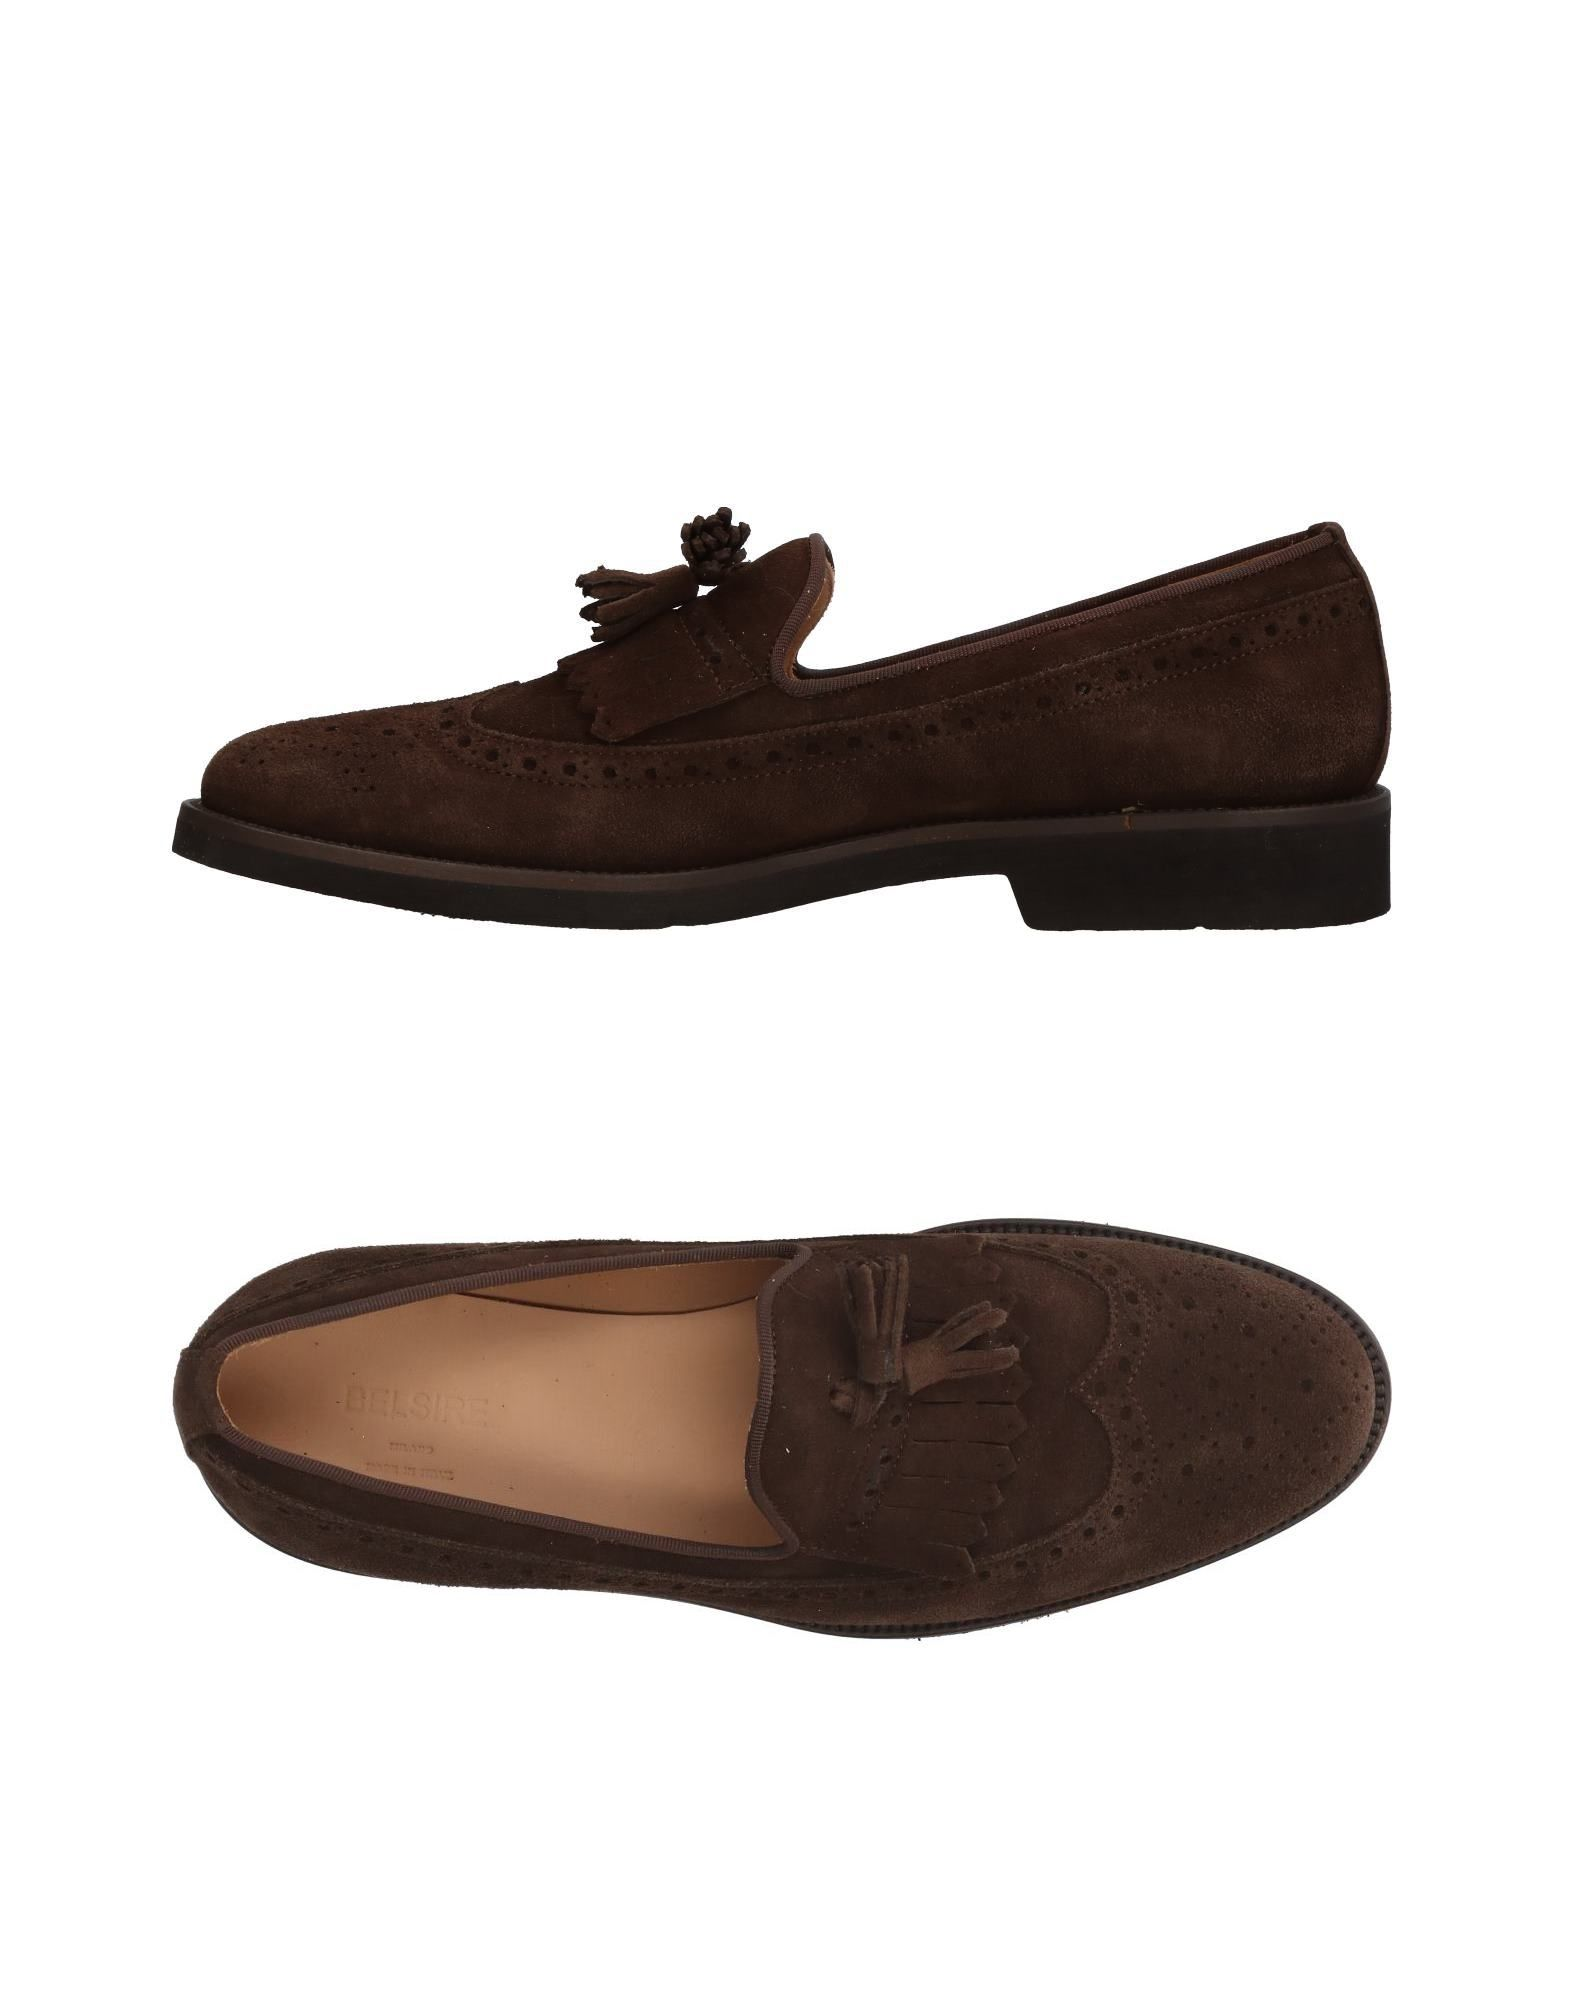 Belsire Loafers - Men Belsire Loafers Loafers Loafers online on  Canada - 11336628OV 5a056d